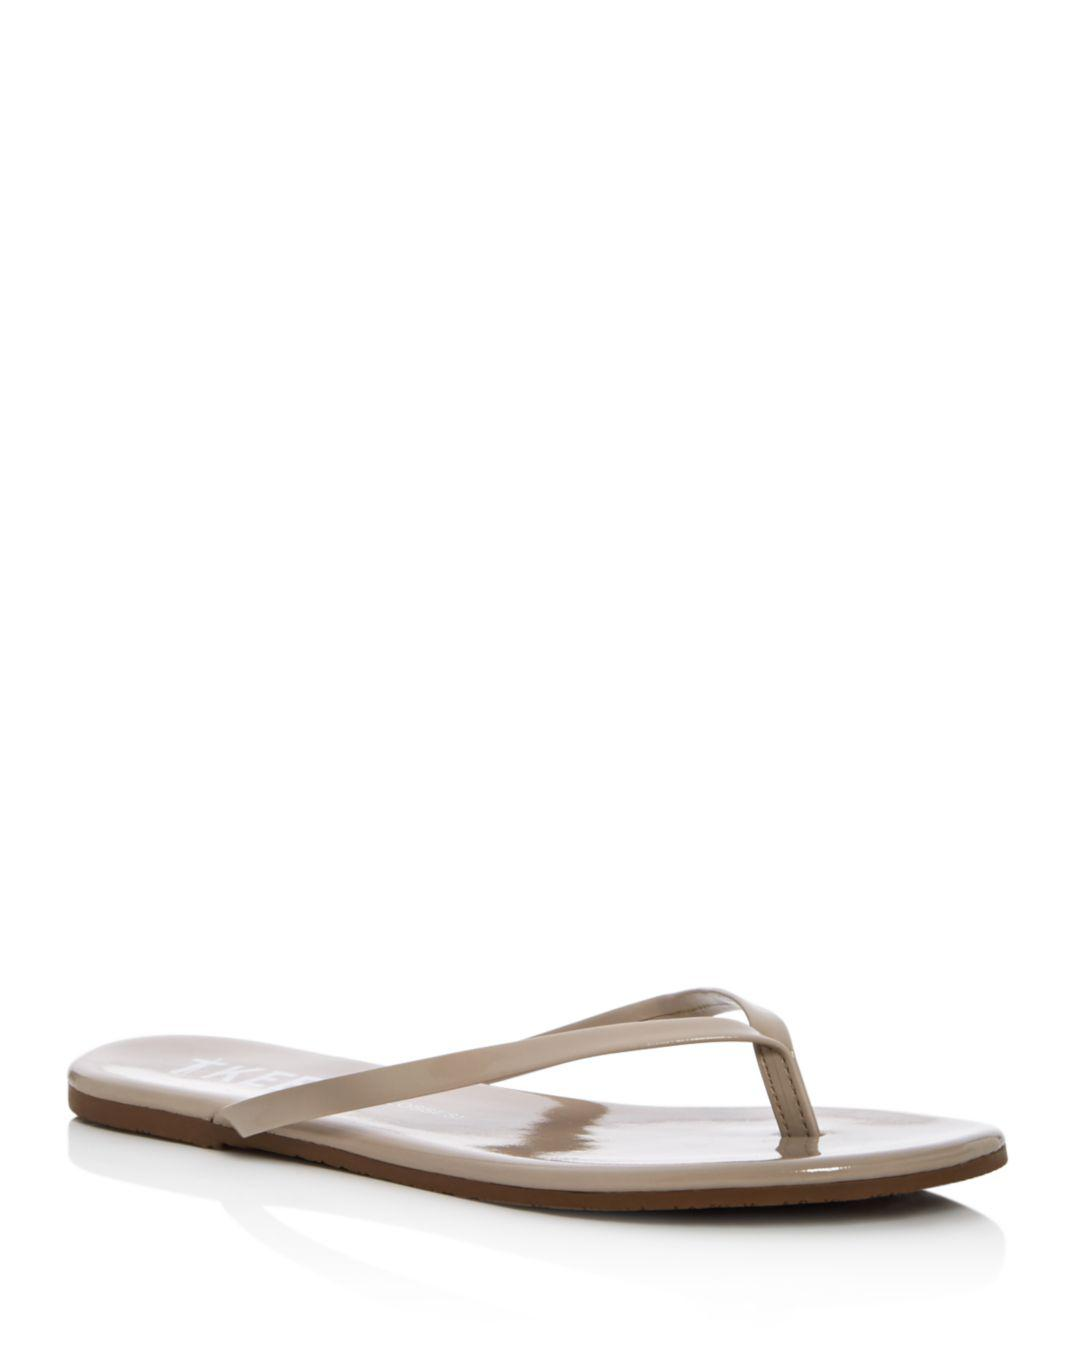 fcc075c03577b TKEES Women's Glosses Patent Leather Flip-flops in Natural - Lyst